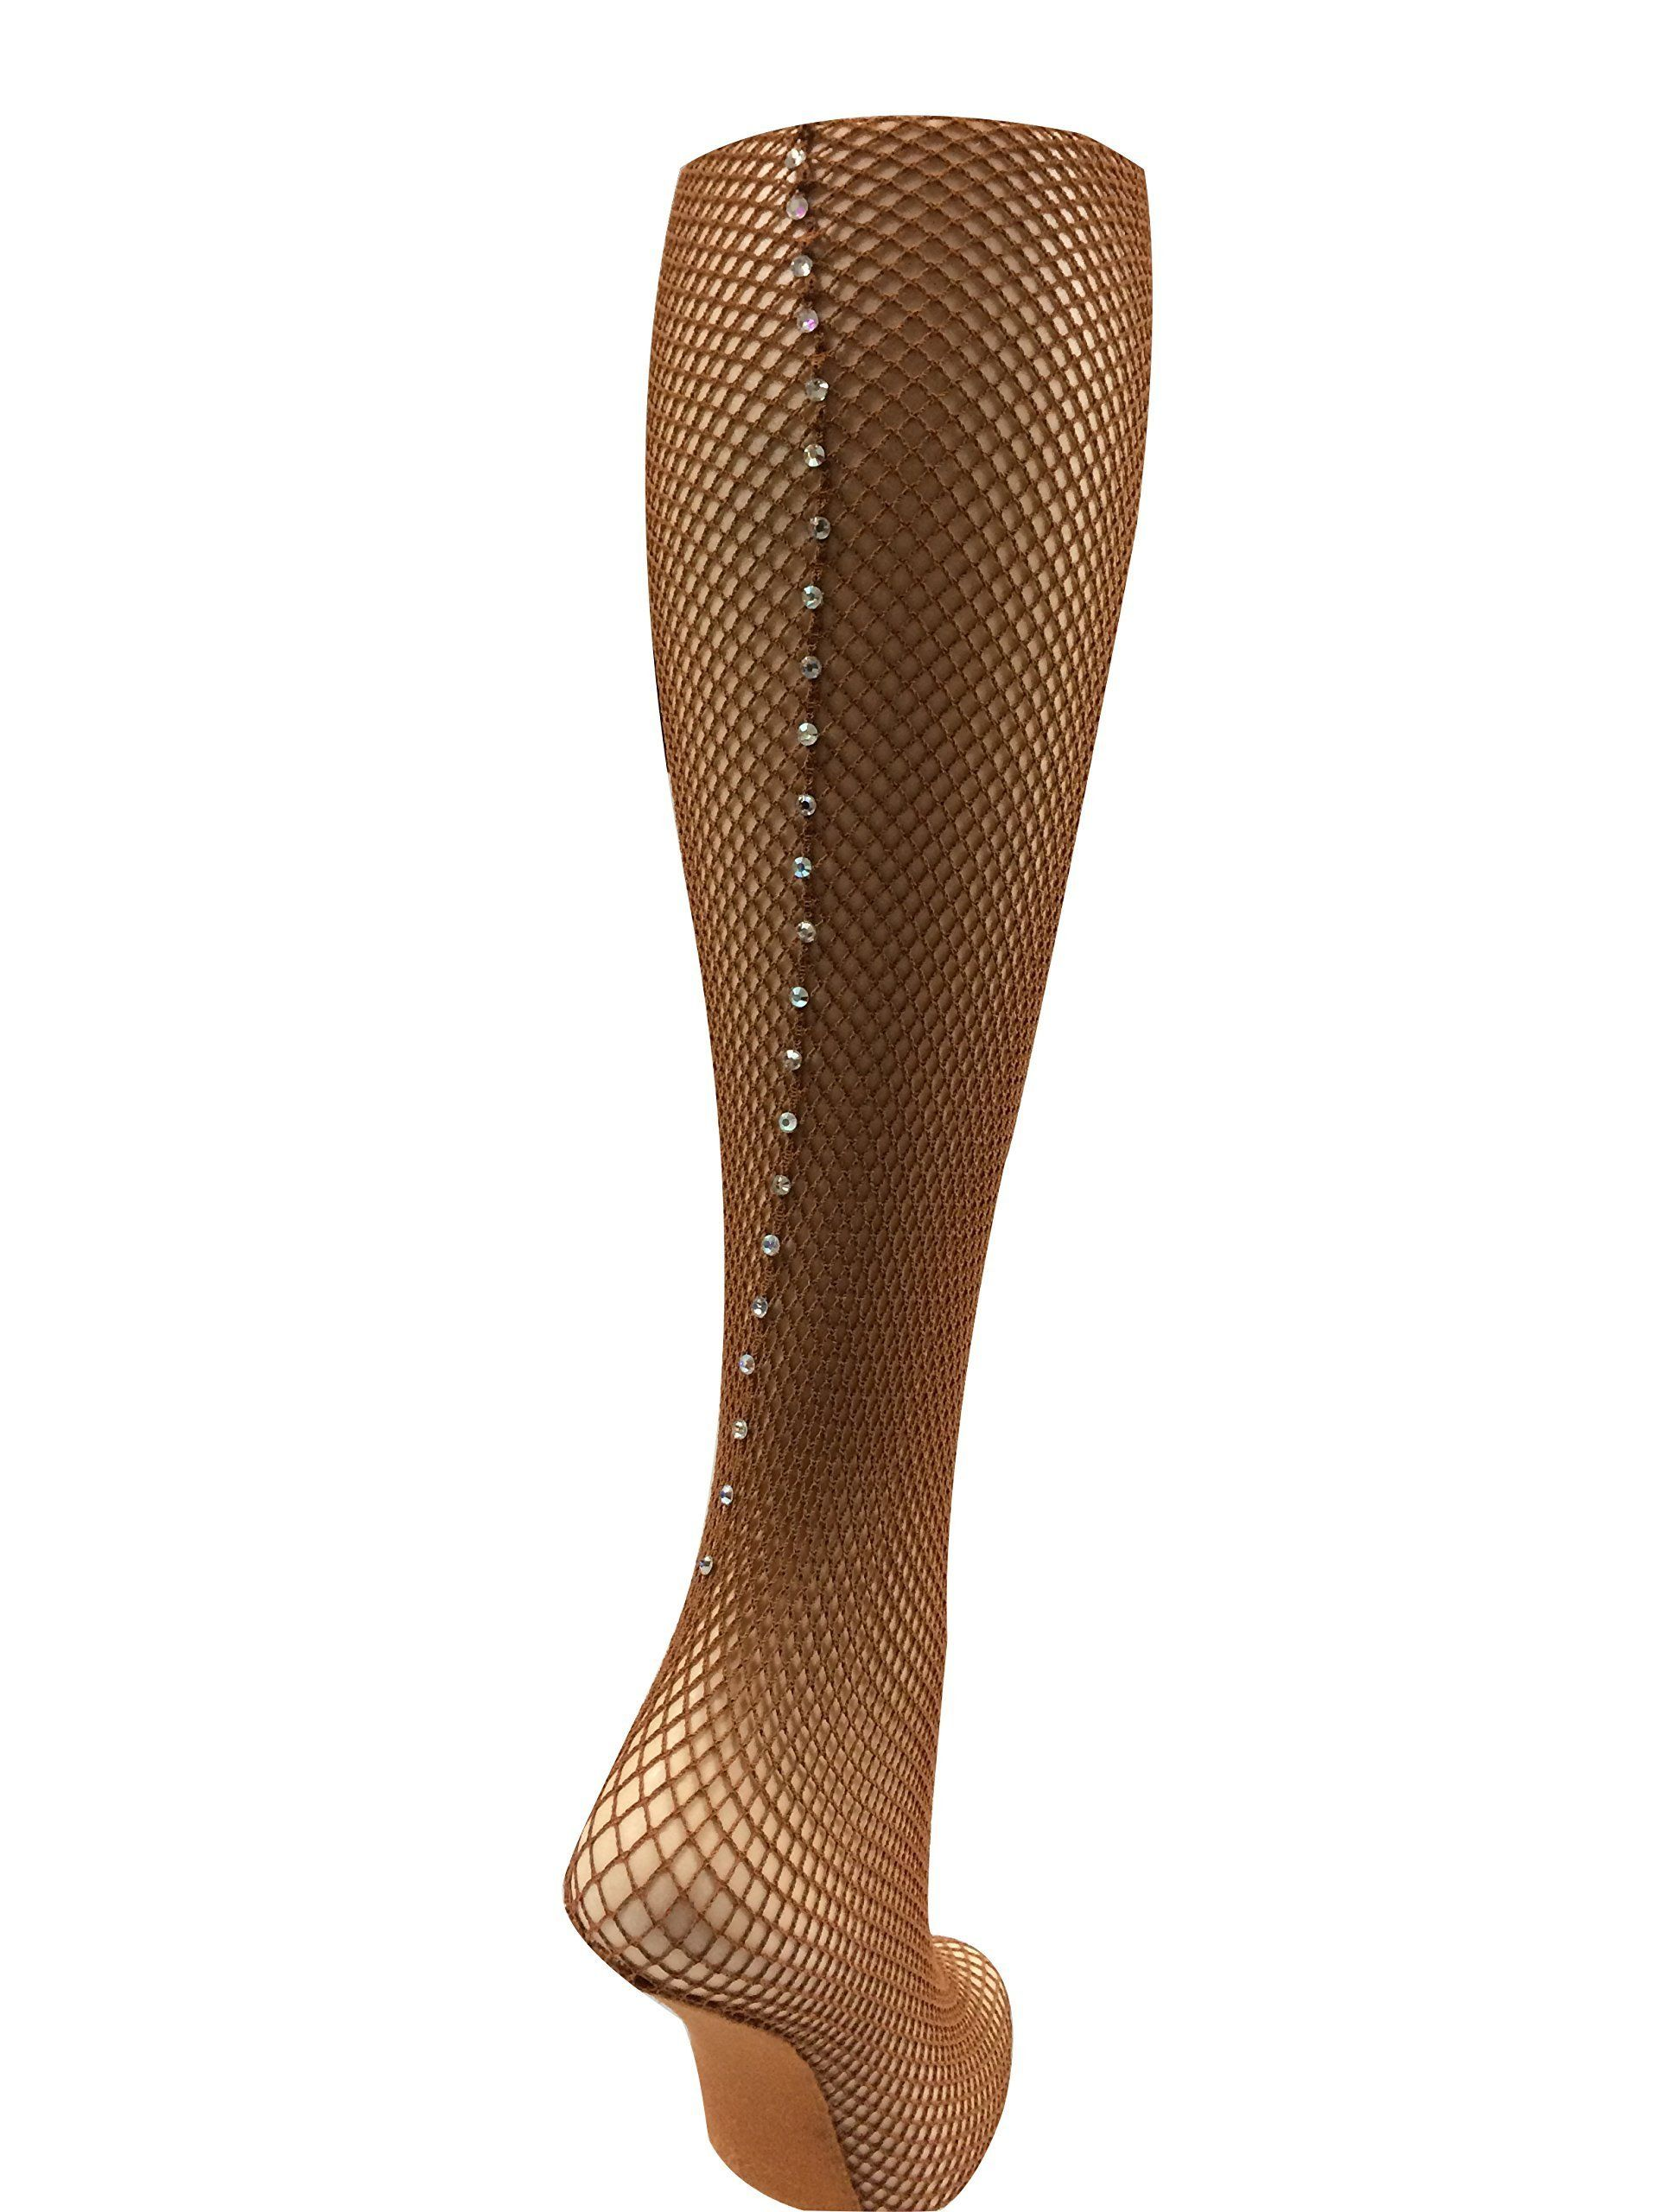 3bc3ec98486d5 Capezio Swarovski Rhinestones Fishnet Seamed Tights 3400 4.4 out of 5 stars  via 20 review(